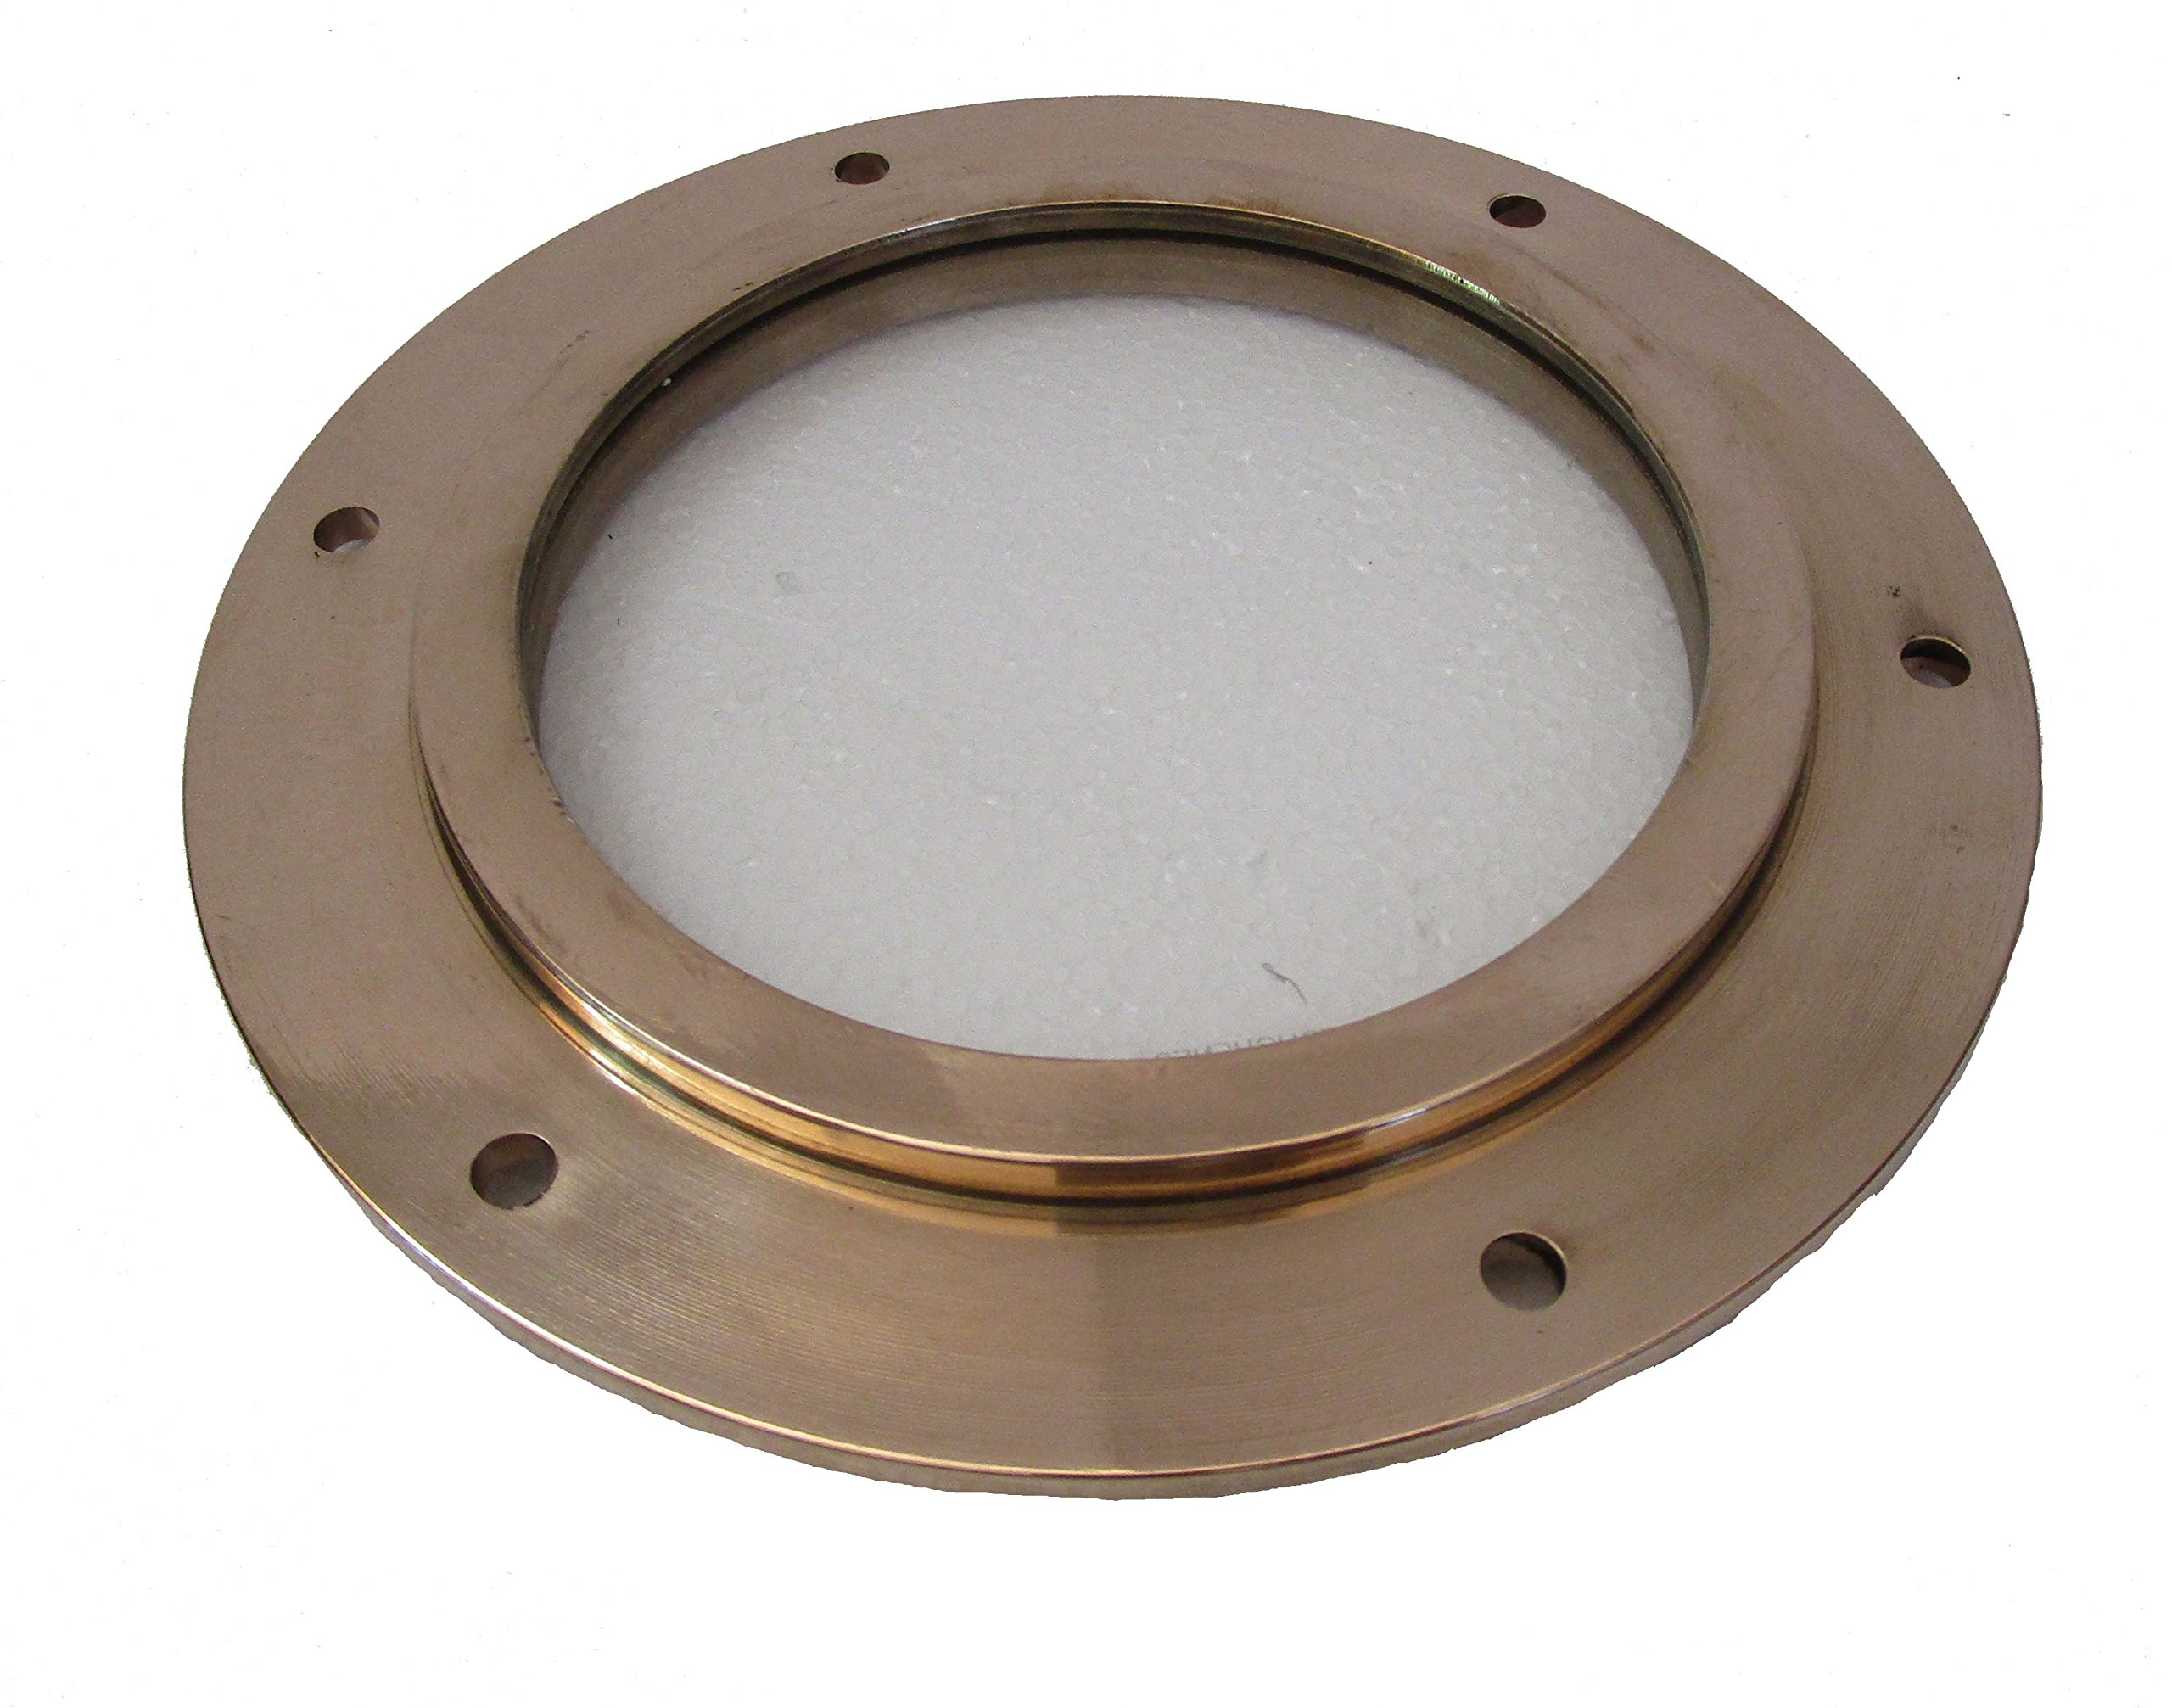 Brass Blessing Marine BRASS Port Hole/Window/Porthole – 9 Inches Outer - TOUGHENED GLASS - Nautical/Boat/Maritime (5227)